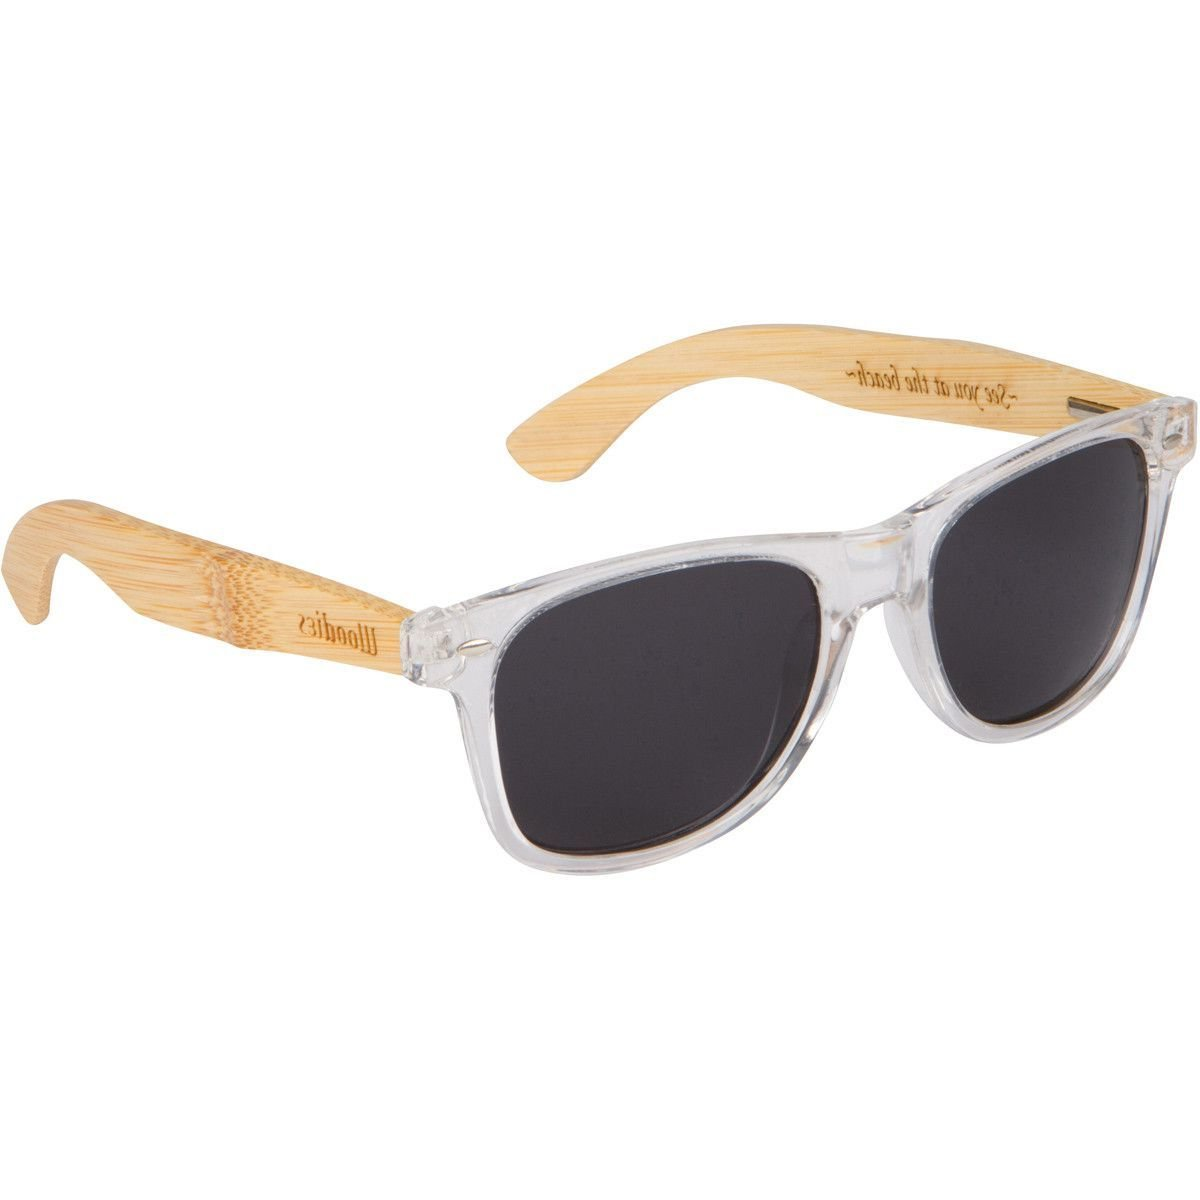 woodies bamboo wood sunglasses with clear plastic frames sunglasses 2